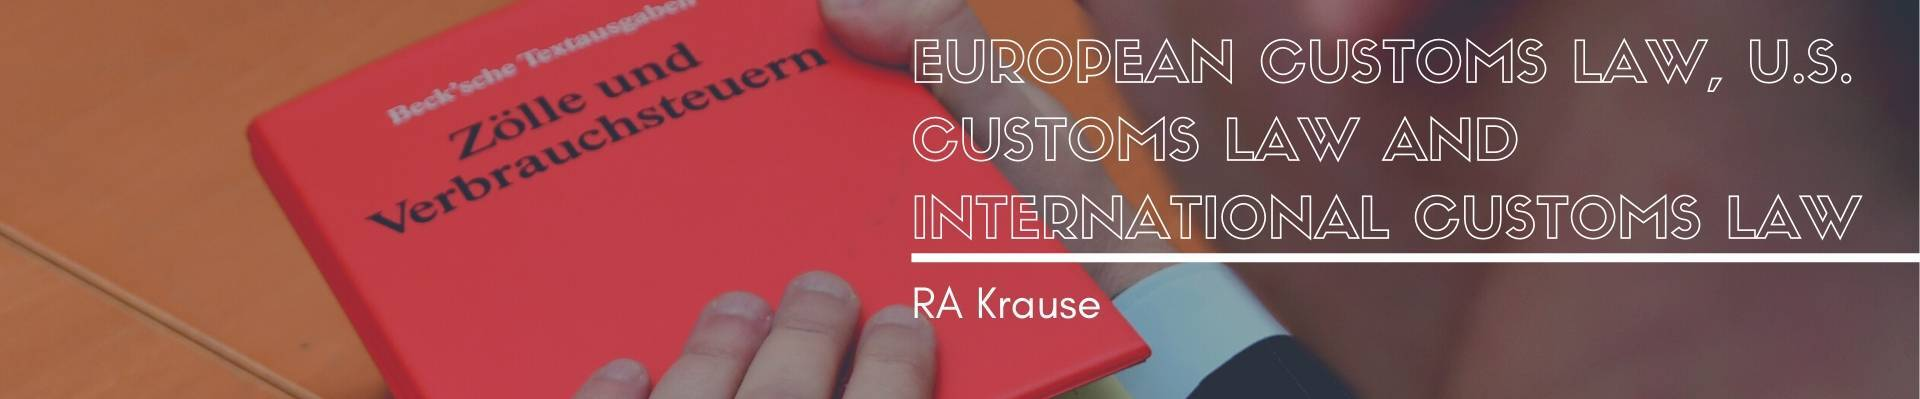 European Customs Law, U.S. Customs Law and International Customs Law